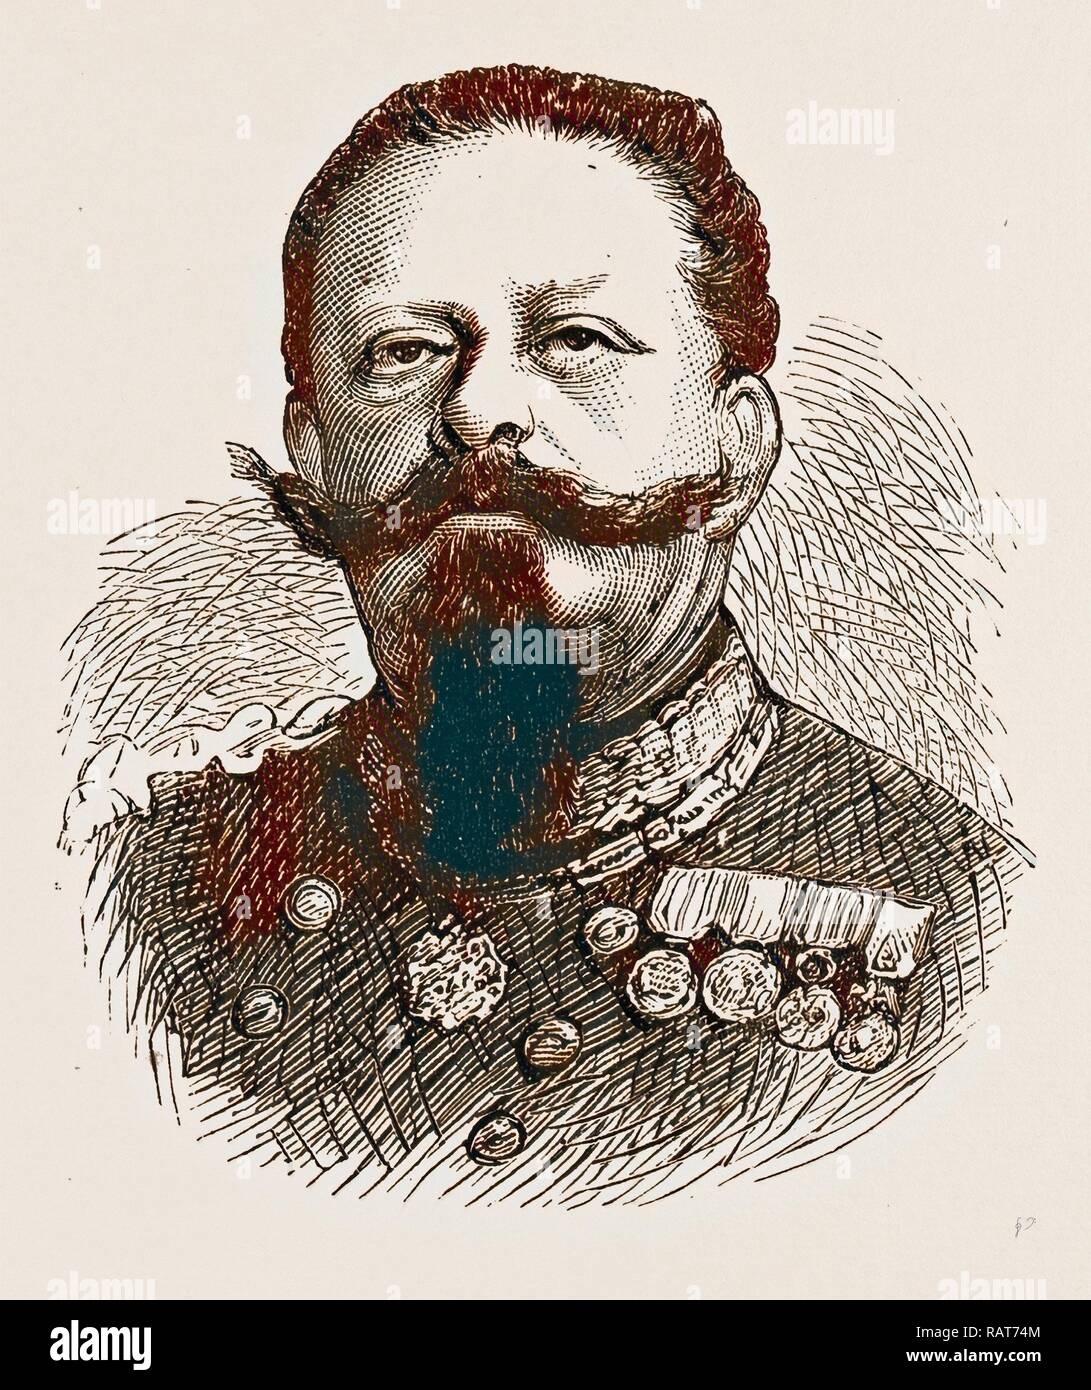 KING VICTOR EMMANUEL, ENGRAVING 1873, ITALY. Reimagined by Gibon. Classic art with a modern twist reimagined - Stock Image